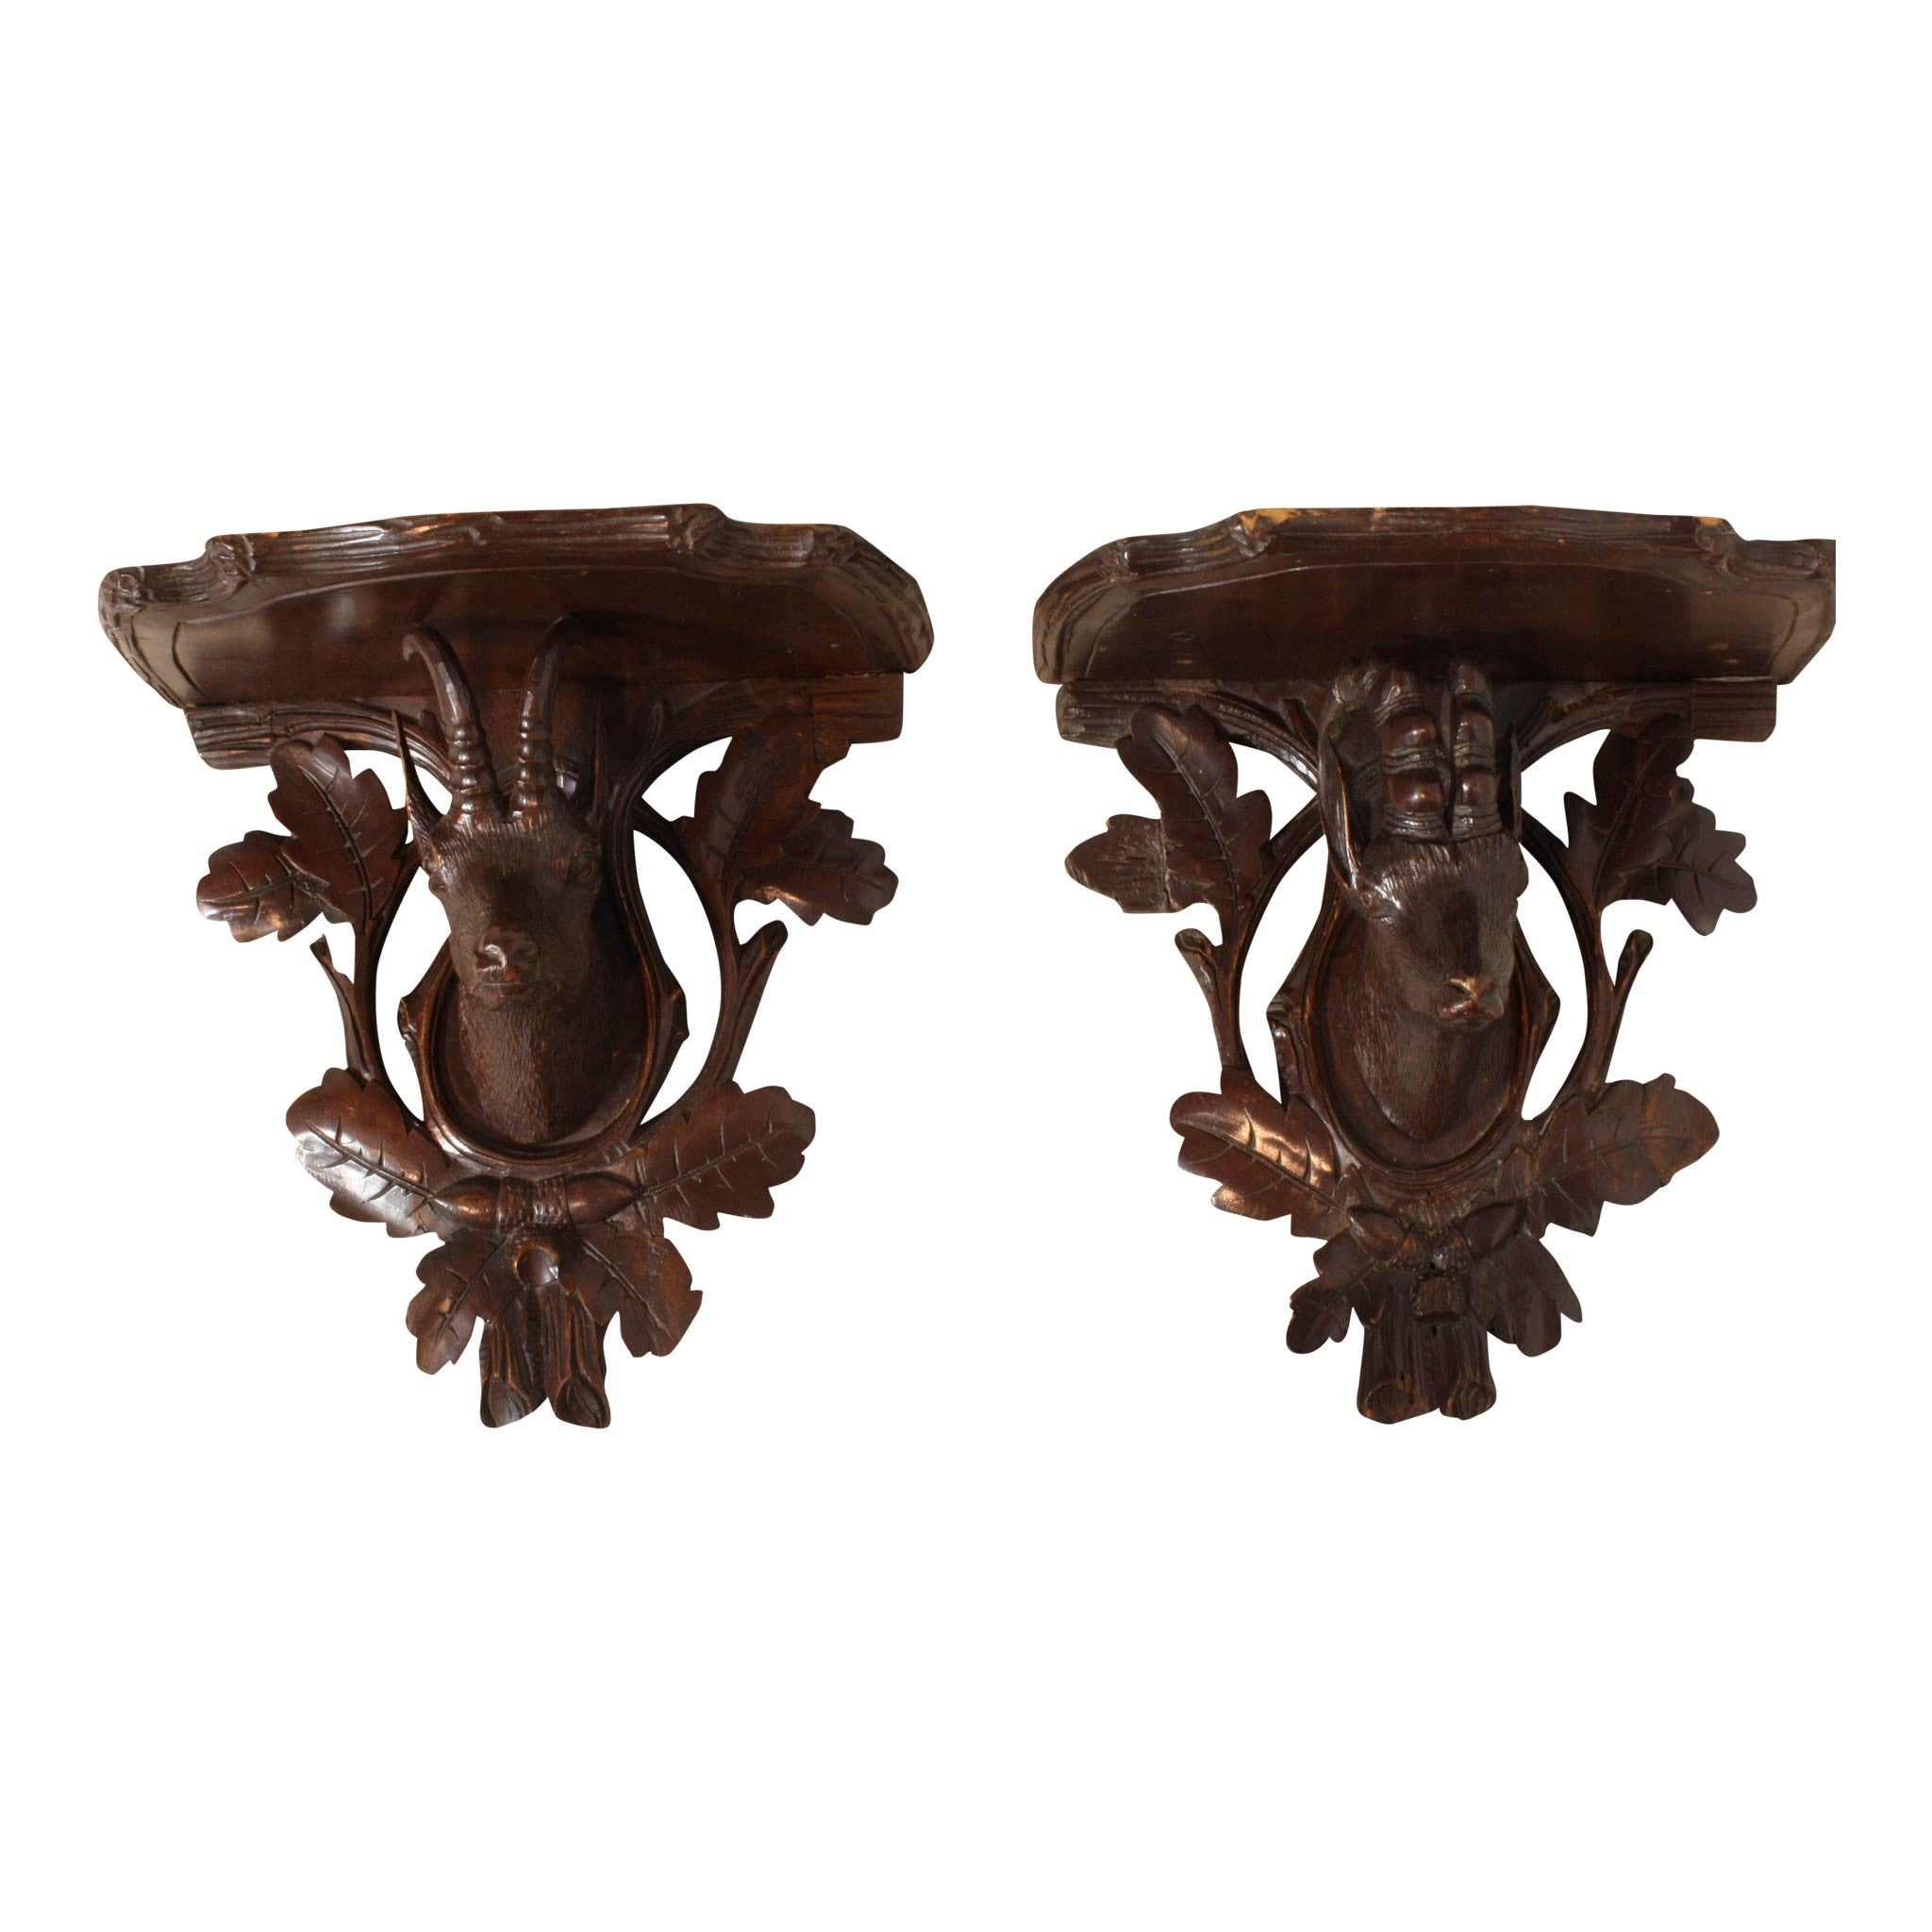 Carved Goat Shelves set of 2